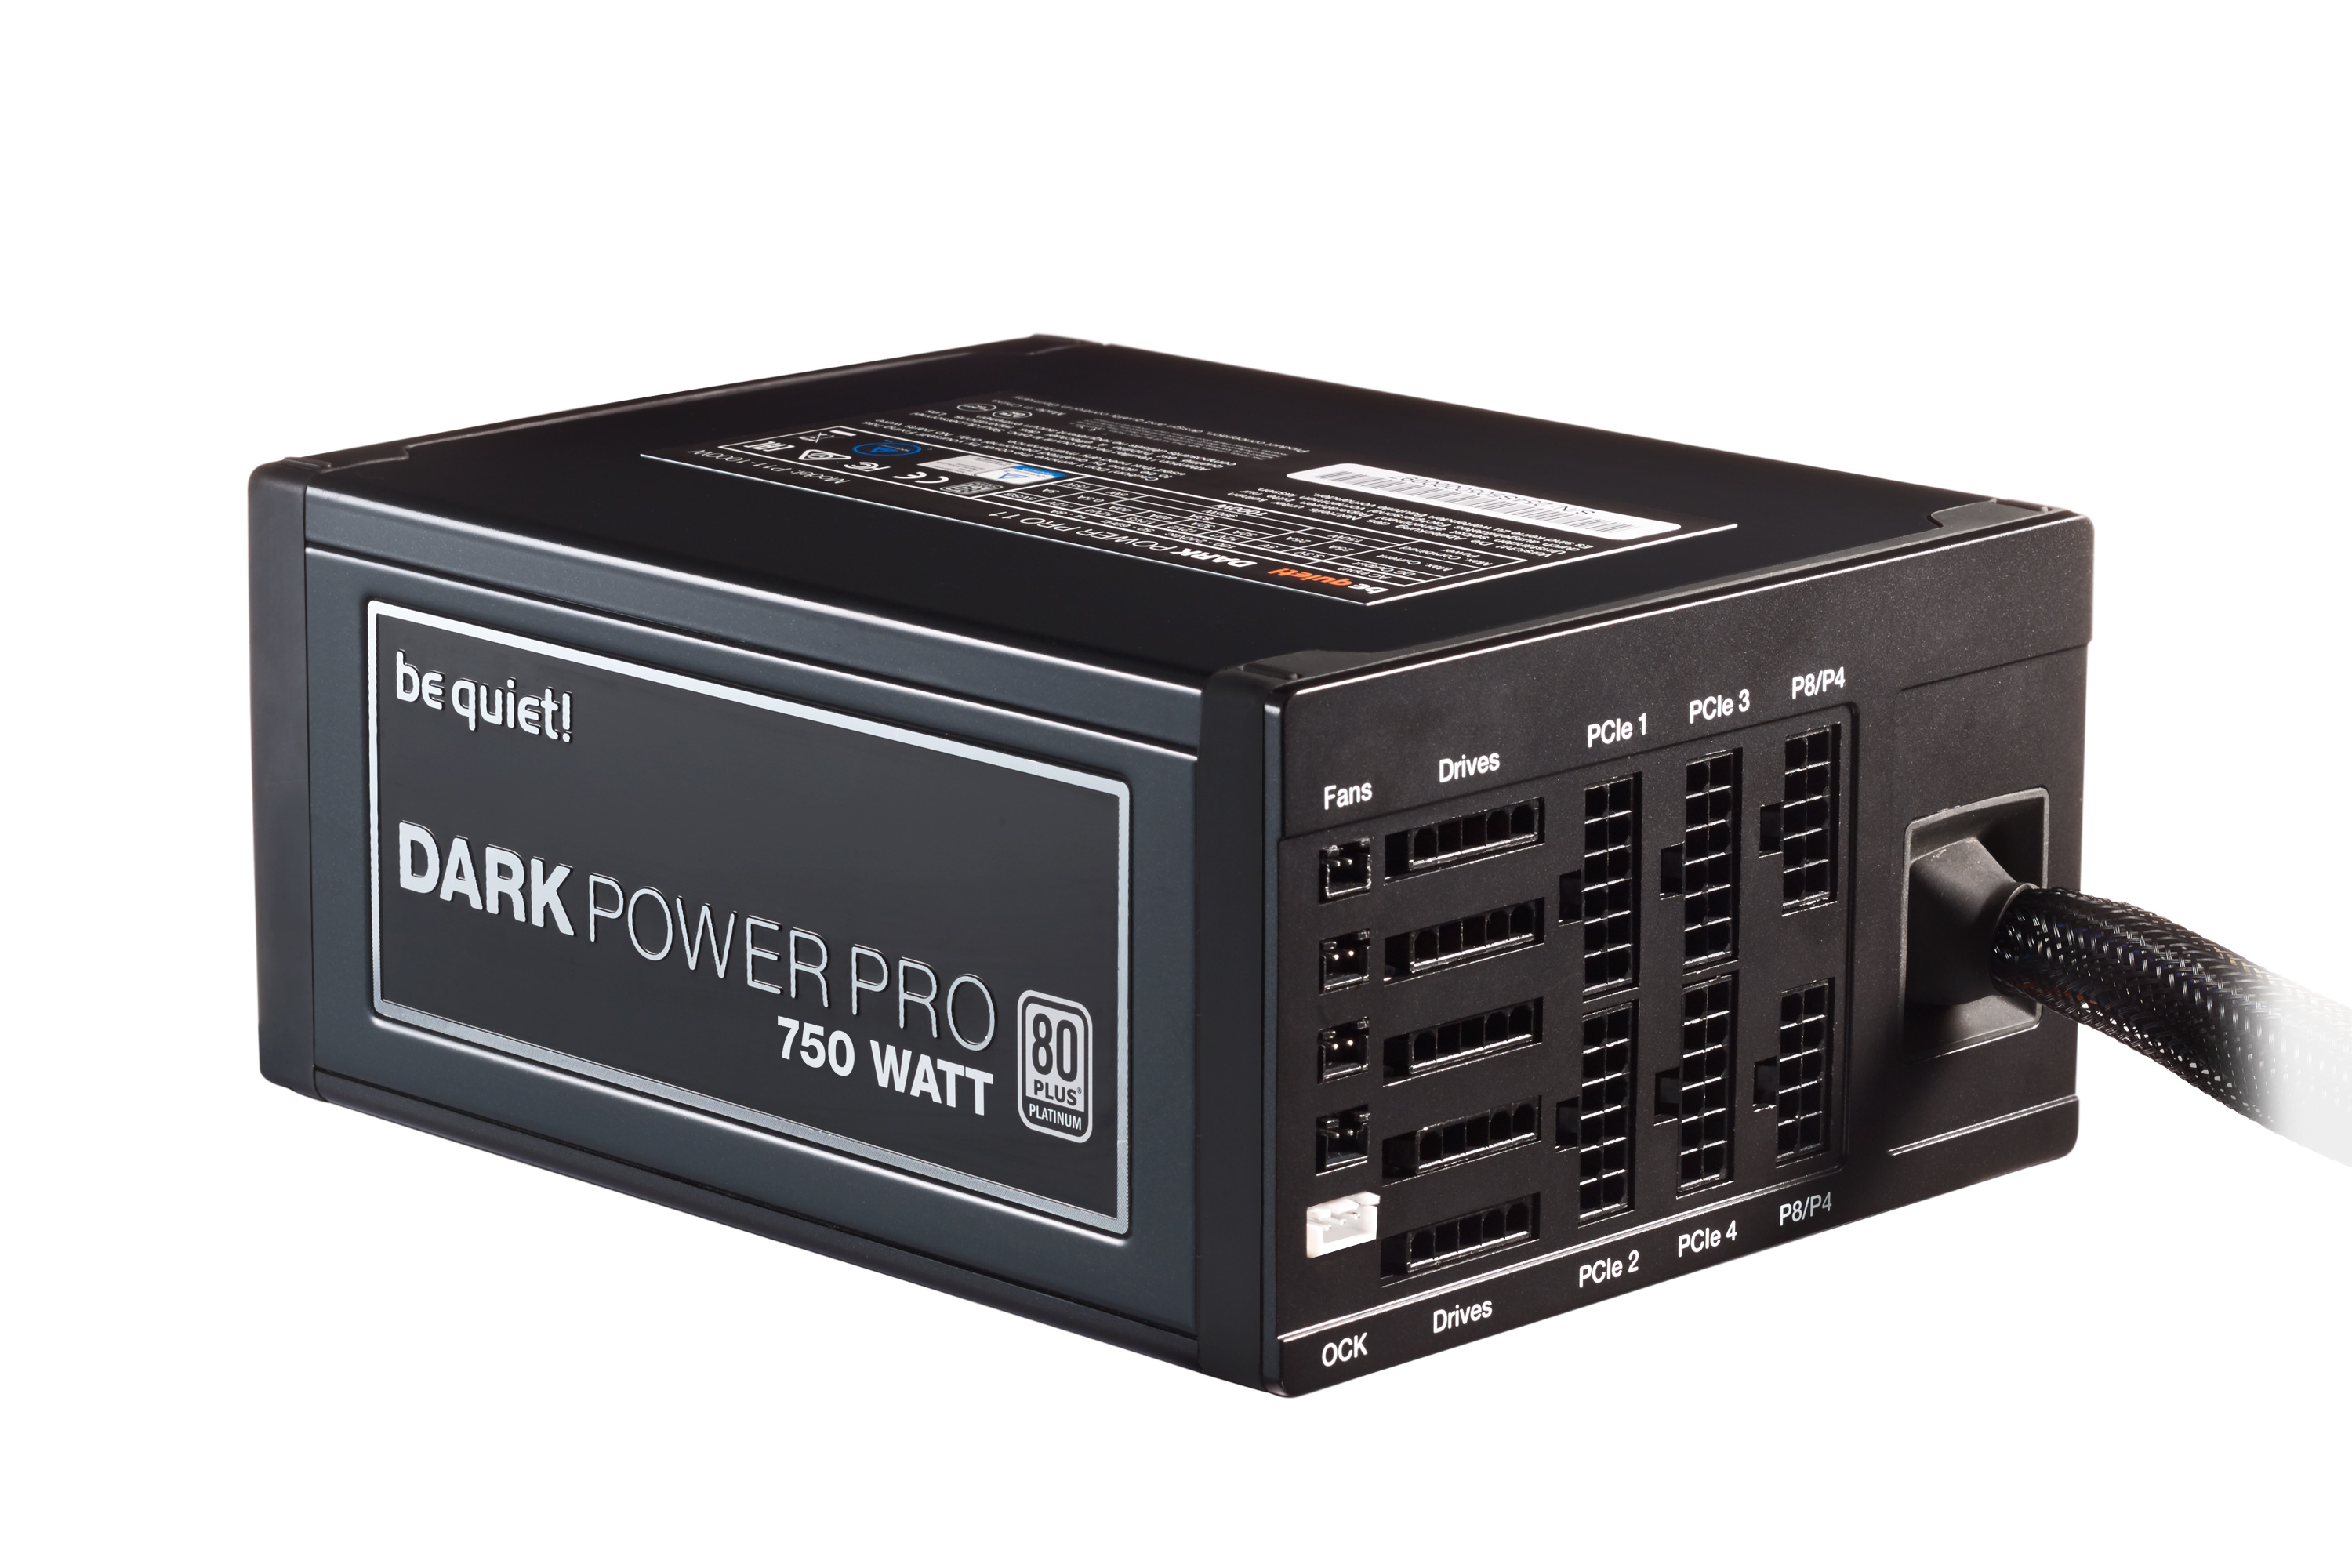 be quiet! Dark Power Pro 11 750W, 80+ Platinum, ErP, Energy Star 6.1 APFC, Sleeved, 6+1xPCI-Ex, 8xSATA, 7xPATA, Full Cable Management, Switchable 4 or 1 Rail, Silent Wings 3 135